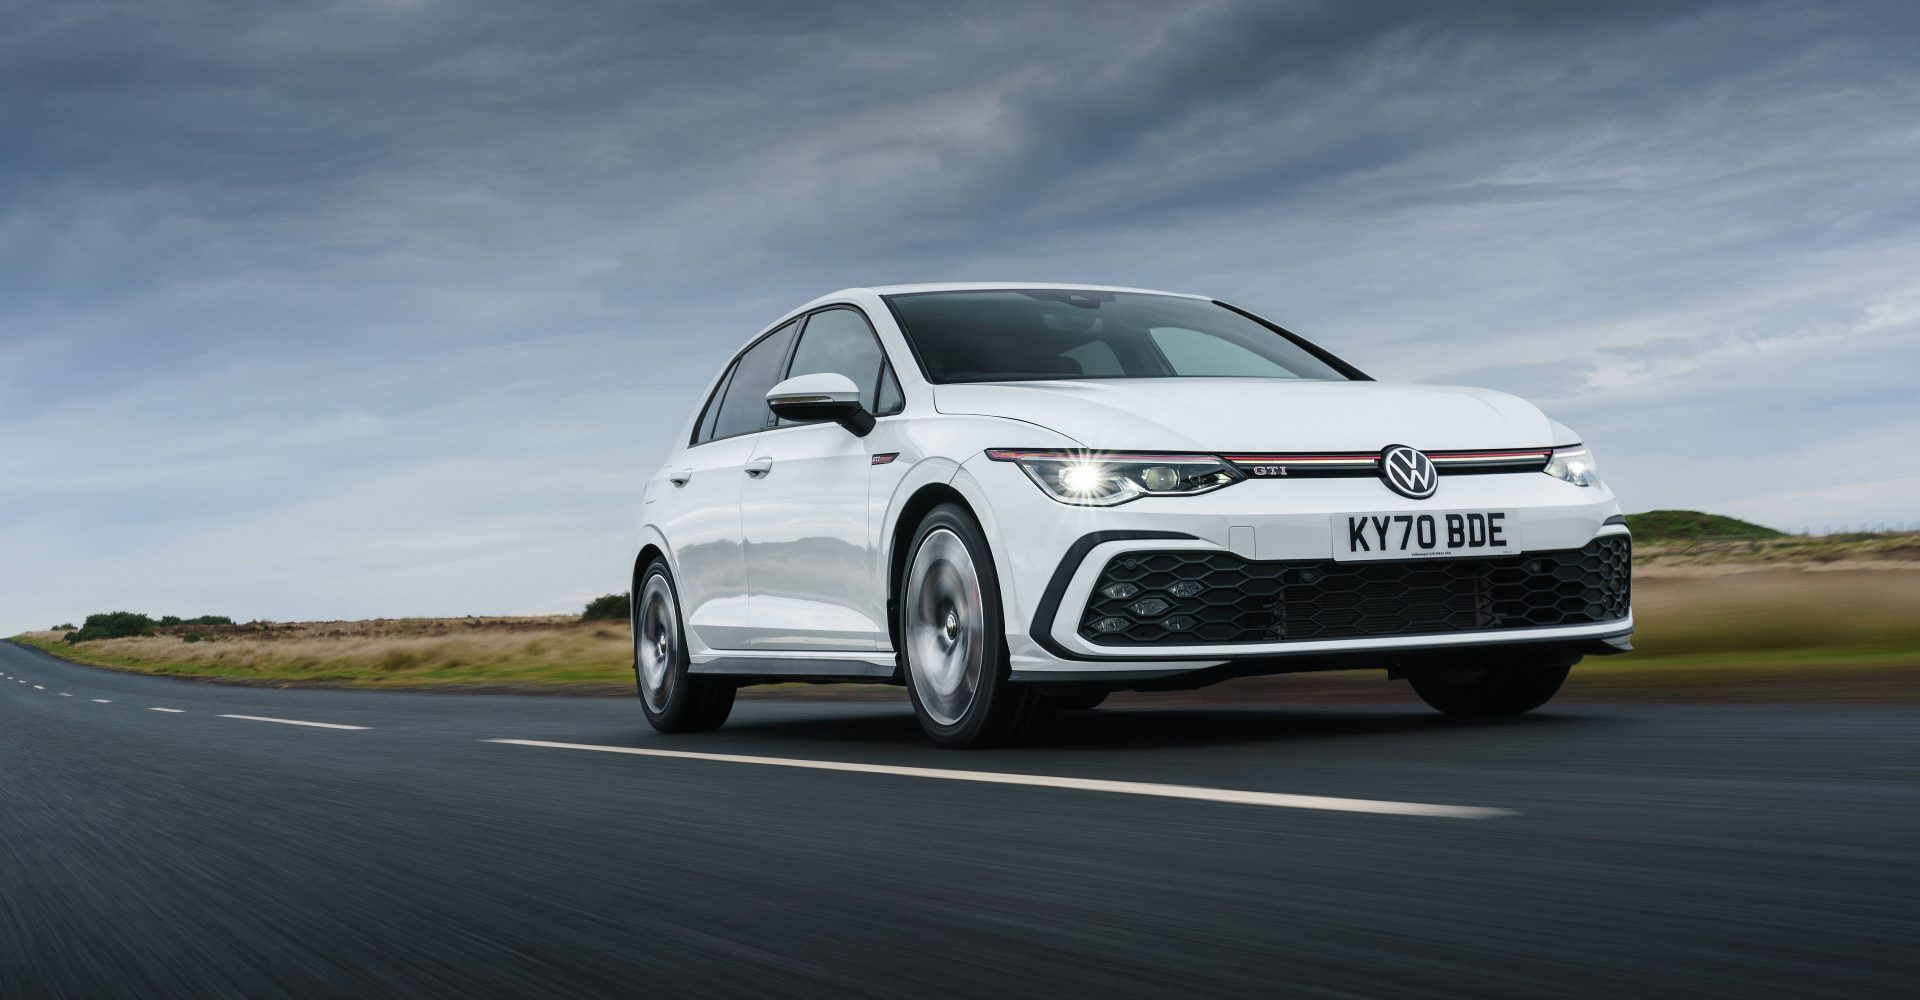 First Drive: Can the latest Volkswagen Golf GTI move the game forward?